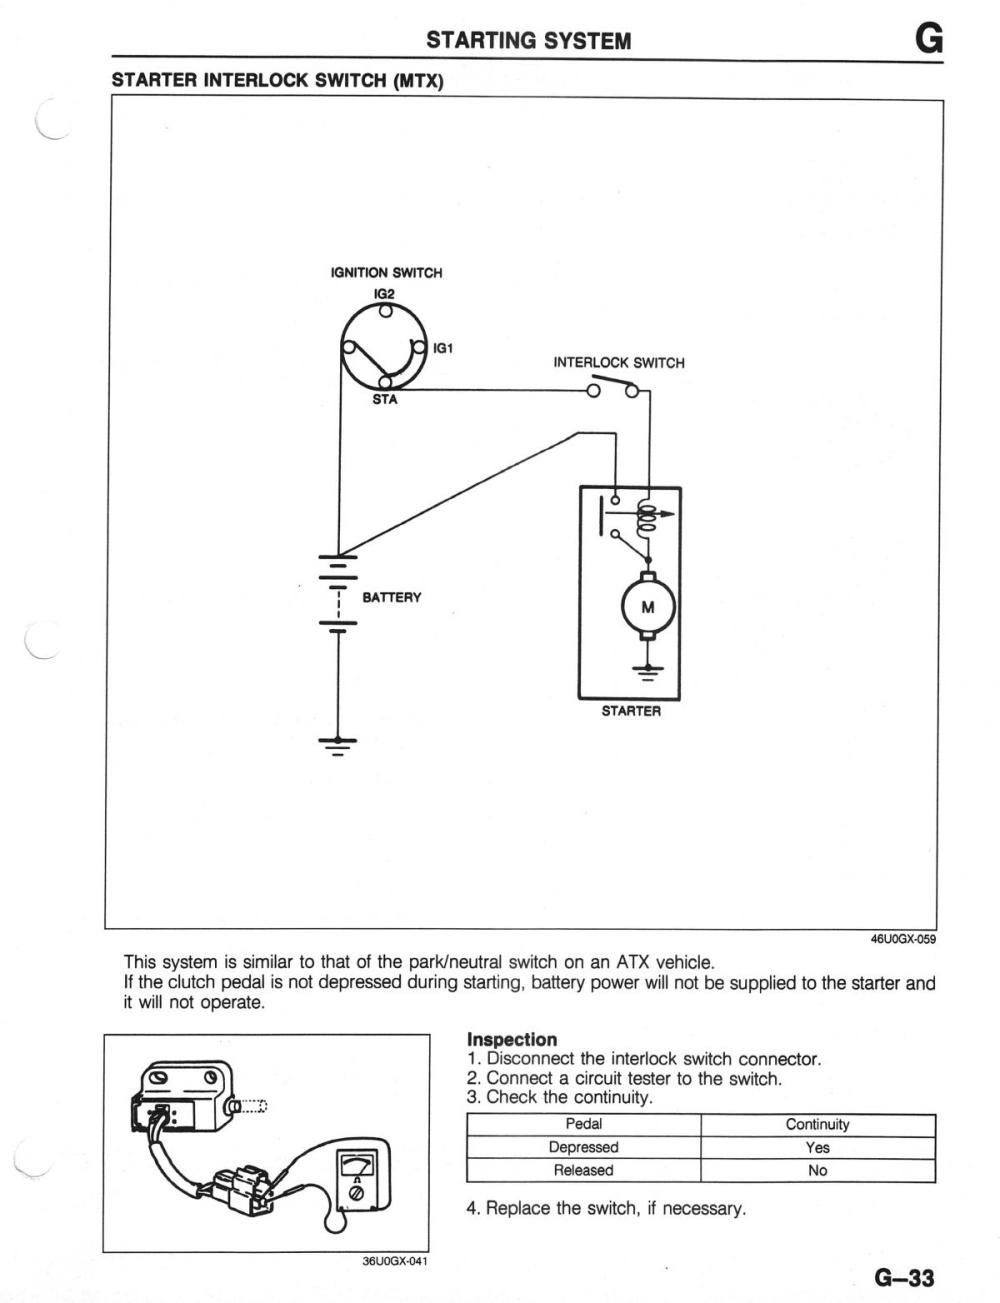 medium resolution of 1996 626 ignition switch wiring 1993 2002 2l i4 mazda626 net rh mazda626 net 2002 mazda 626 wiring diagram wiring diagram for 1998 mazda